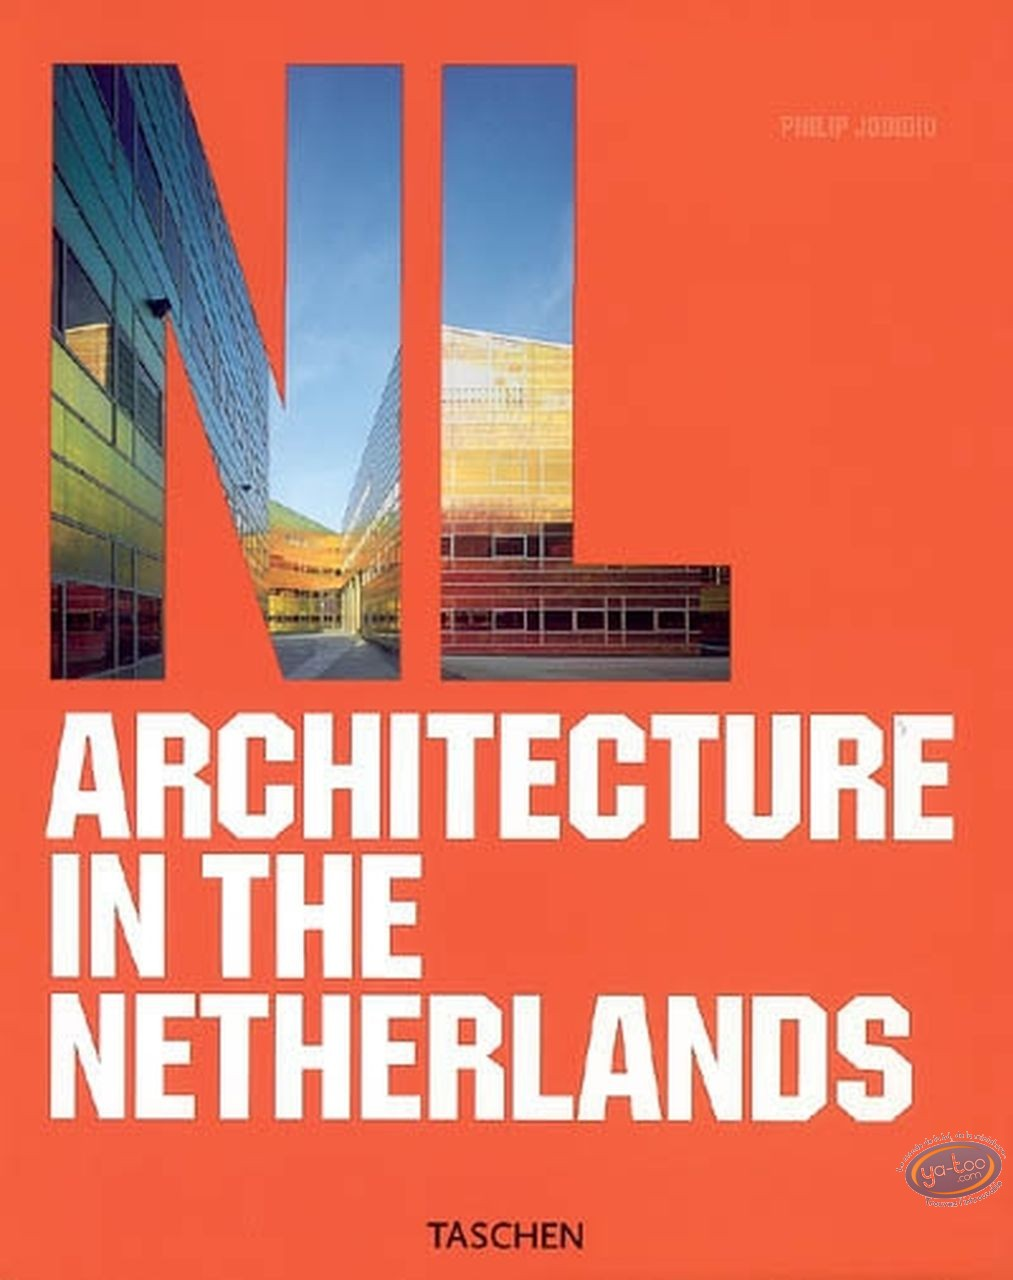 Book, Architecture in the Netherlands